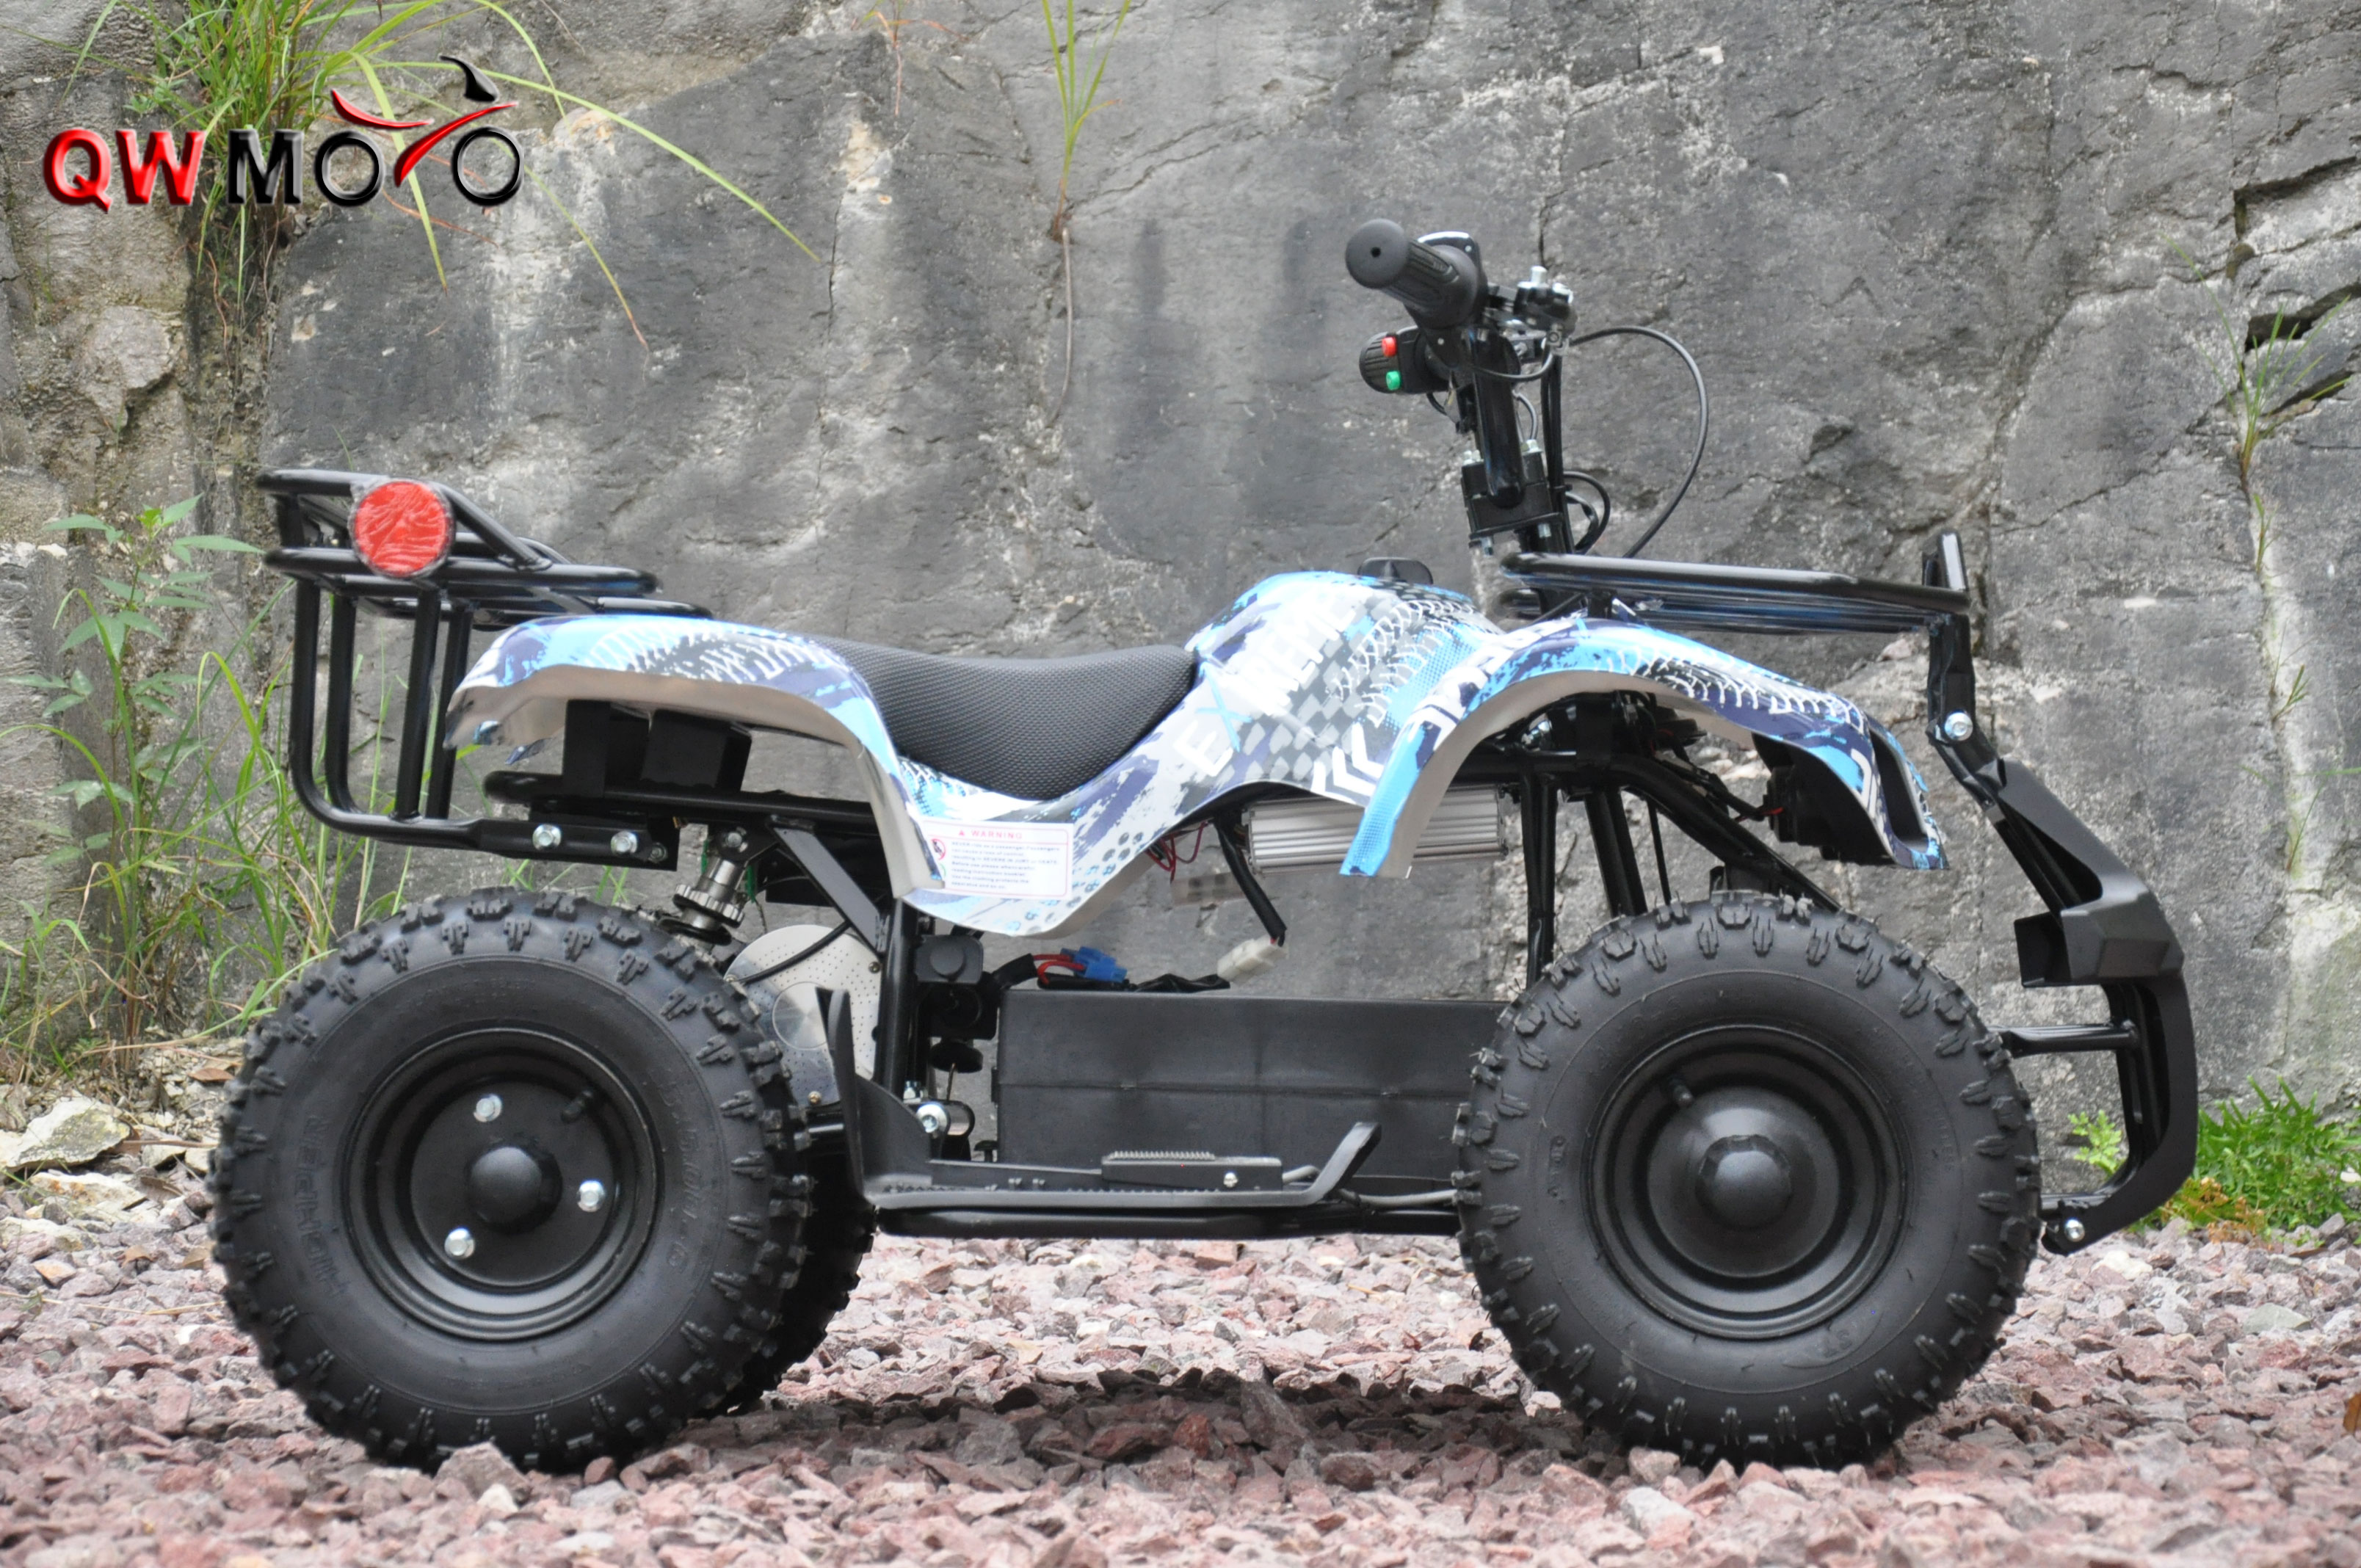 ELECTRIC ATV QWMATV-01A